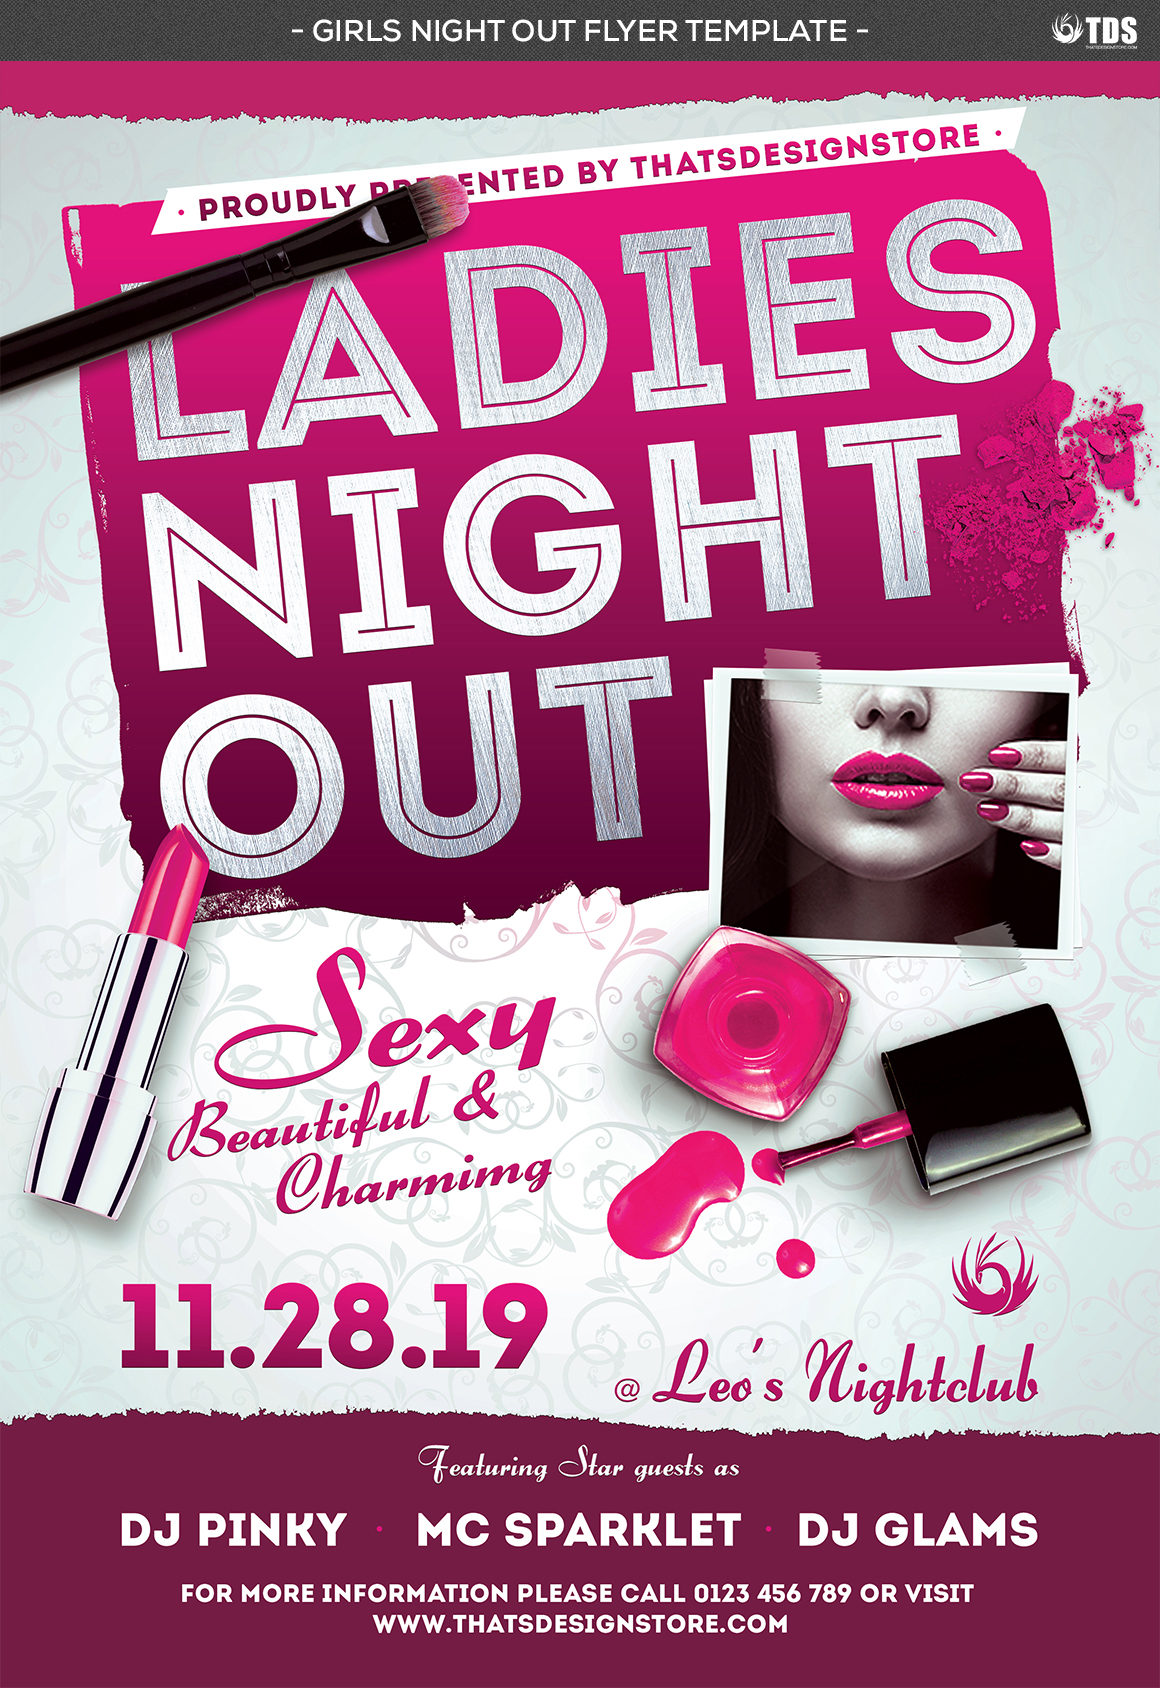 Girls Night Out Flyer Template example image 4